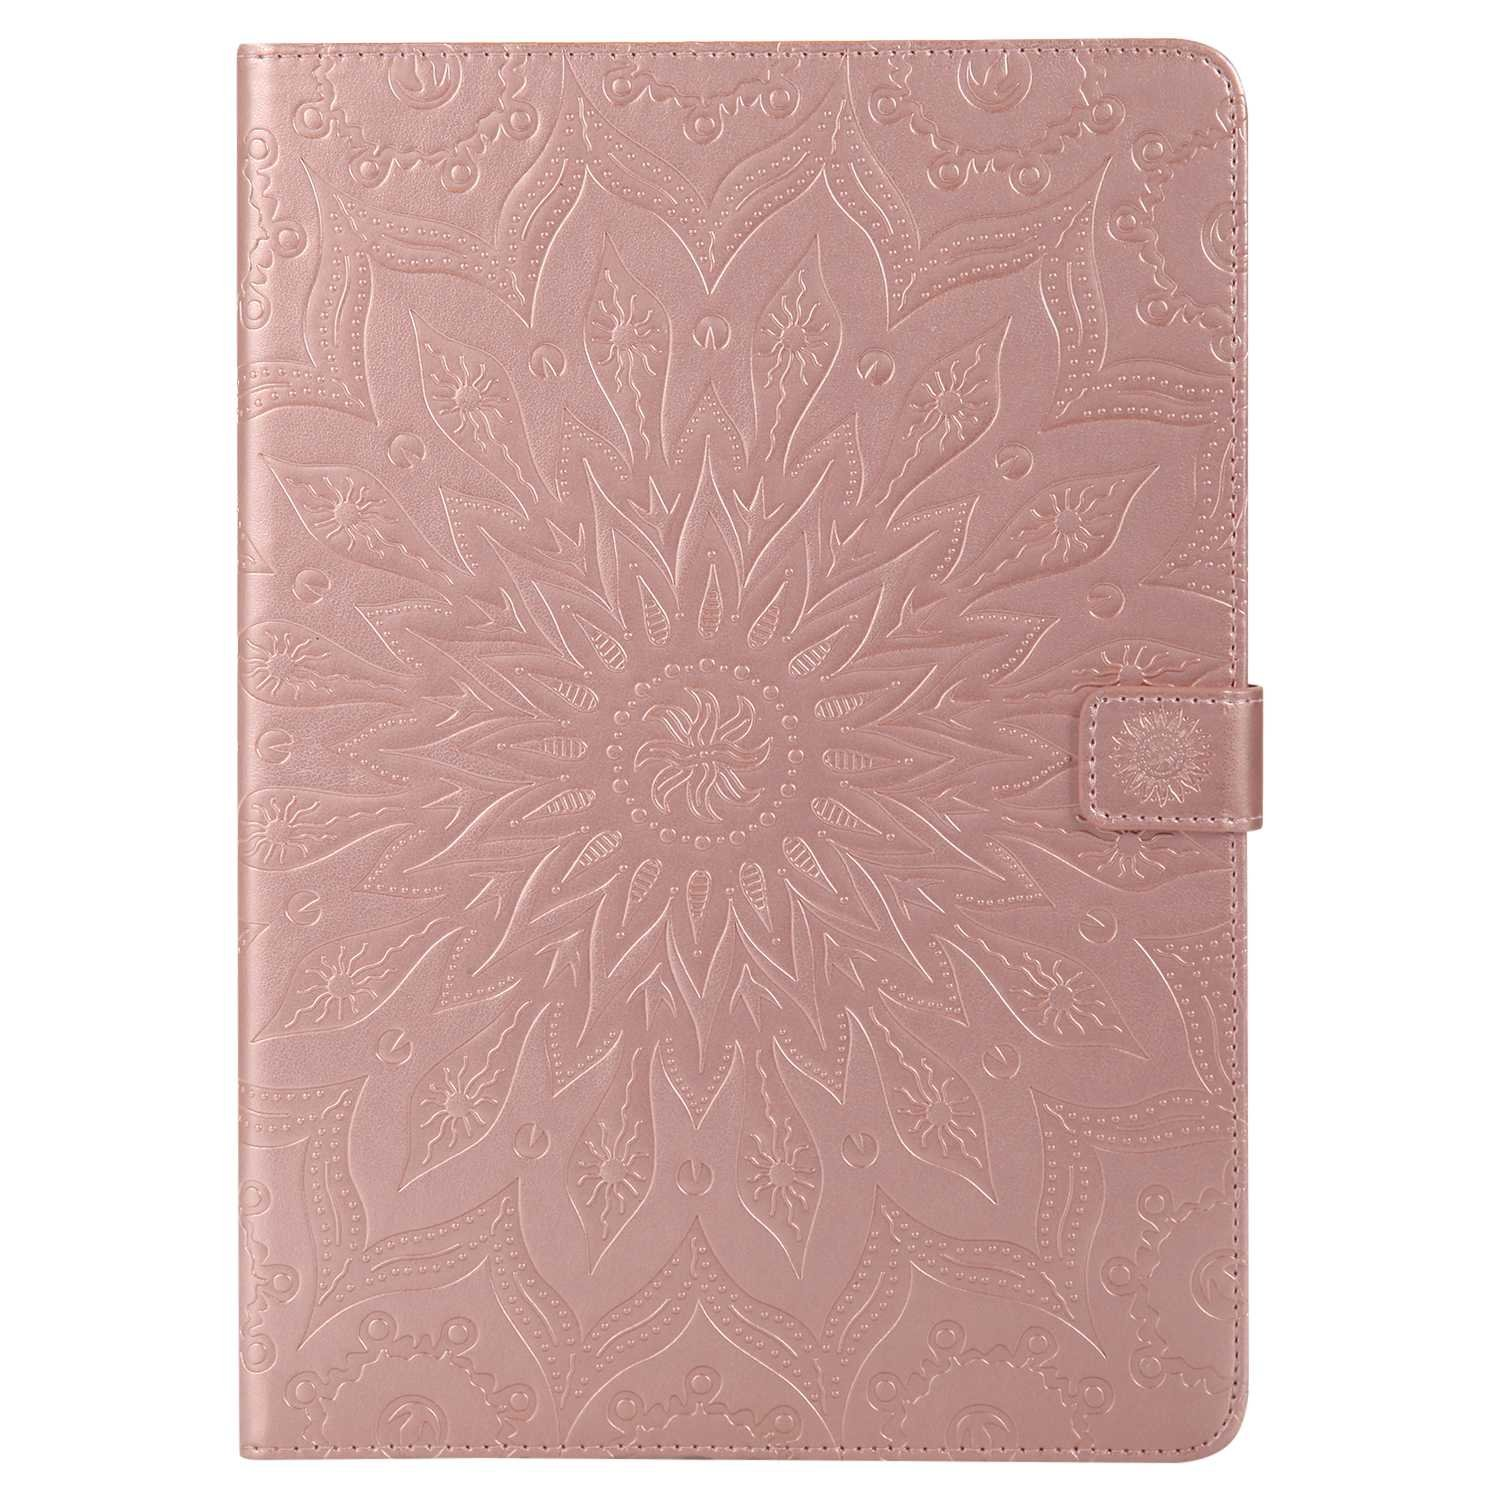 Bear Village iPad Pro 10.5 Inch Case, Anti Scratch Shell with Adjust Stand, Full Body Protective Cover for Apple iPad Pro 10.5 Inch, Rose Gold by Bear Village